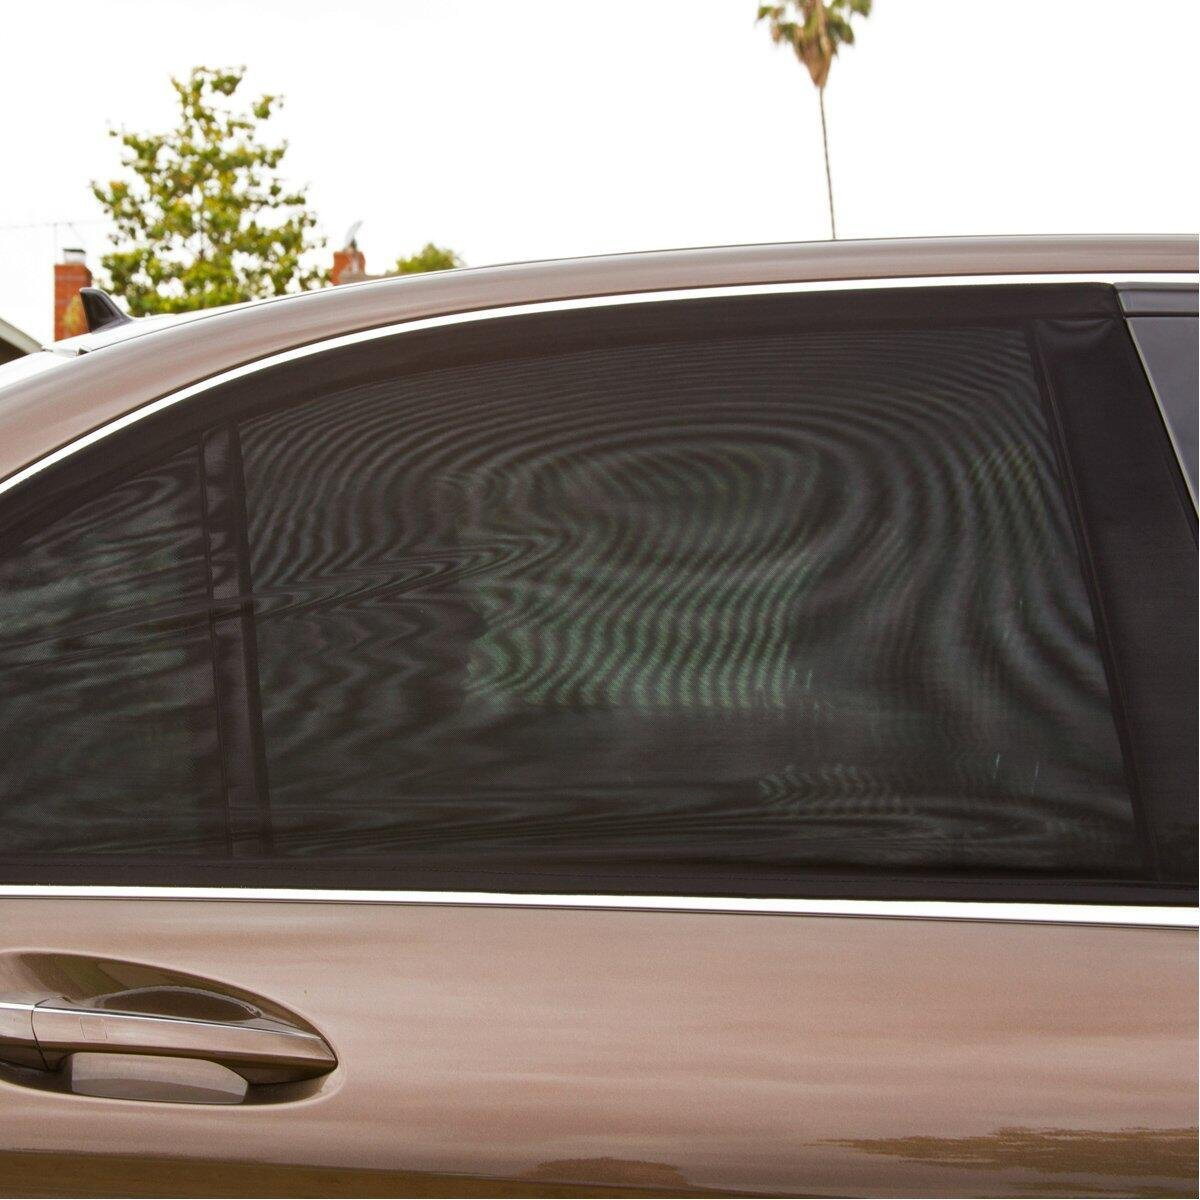 2 x Premium Quality Stretch Material Car Sun Shade Protects Baby Kids and Pets Tinabless Car Window Shades for Blocks UV Rays Car Sun Shades for Kids Covers Rear Side Windows Universal Fits!